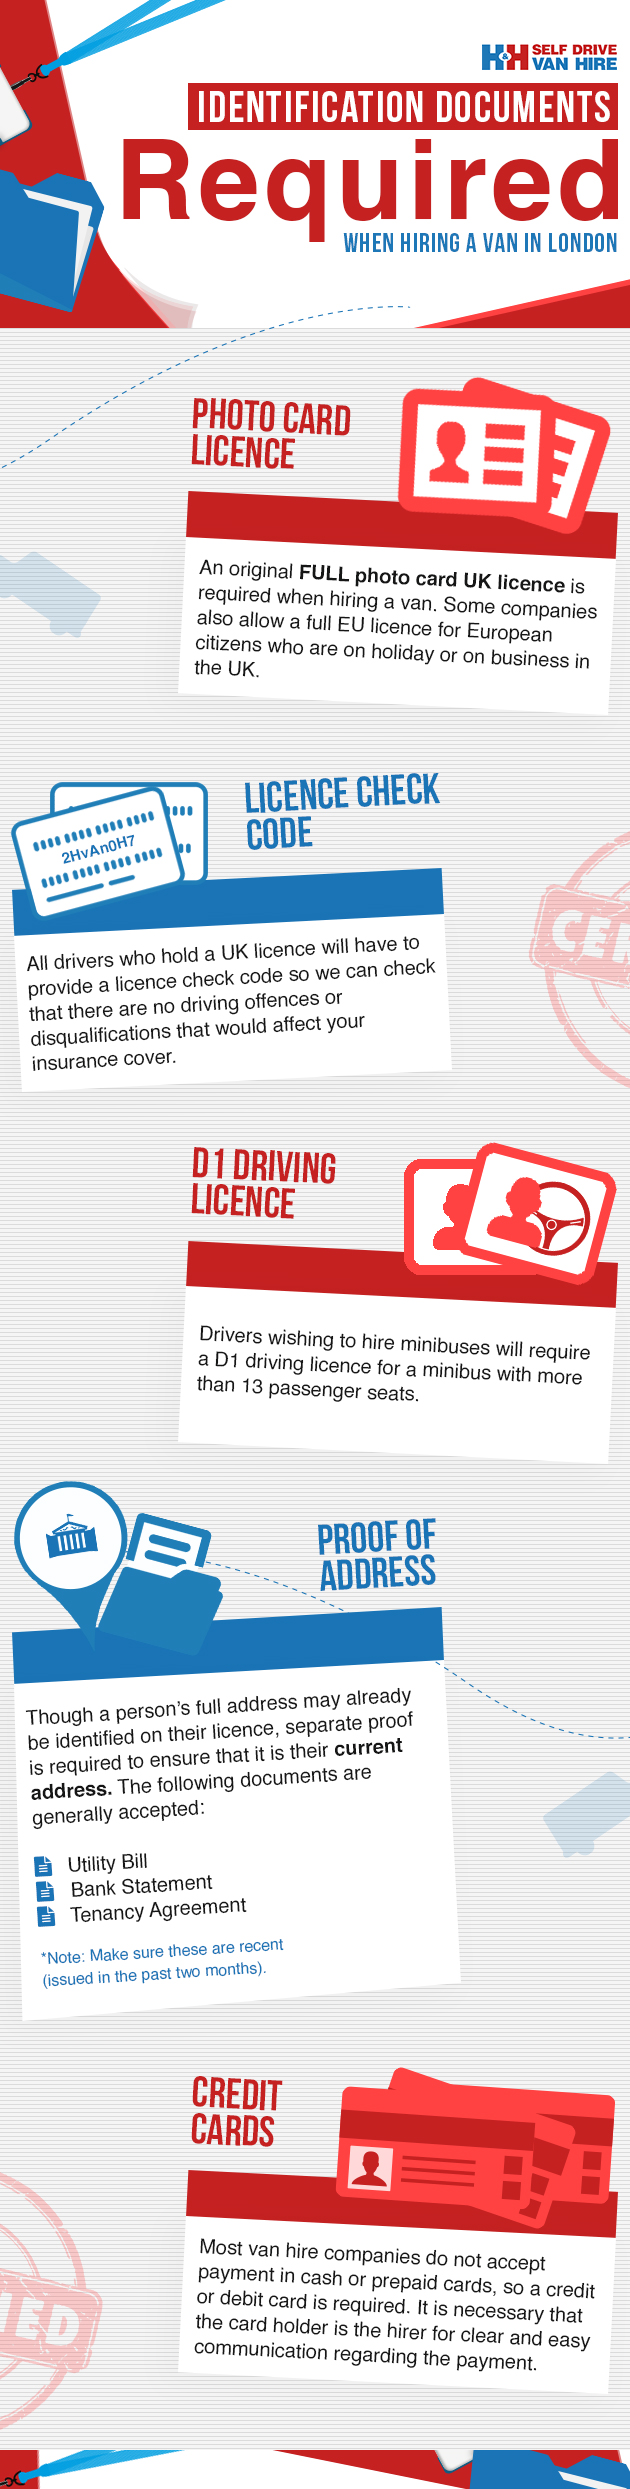 Identification Documents Required When Hiring a Van in London